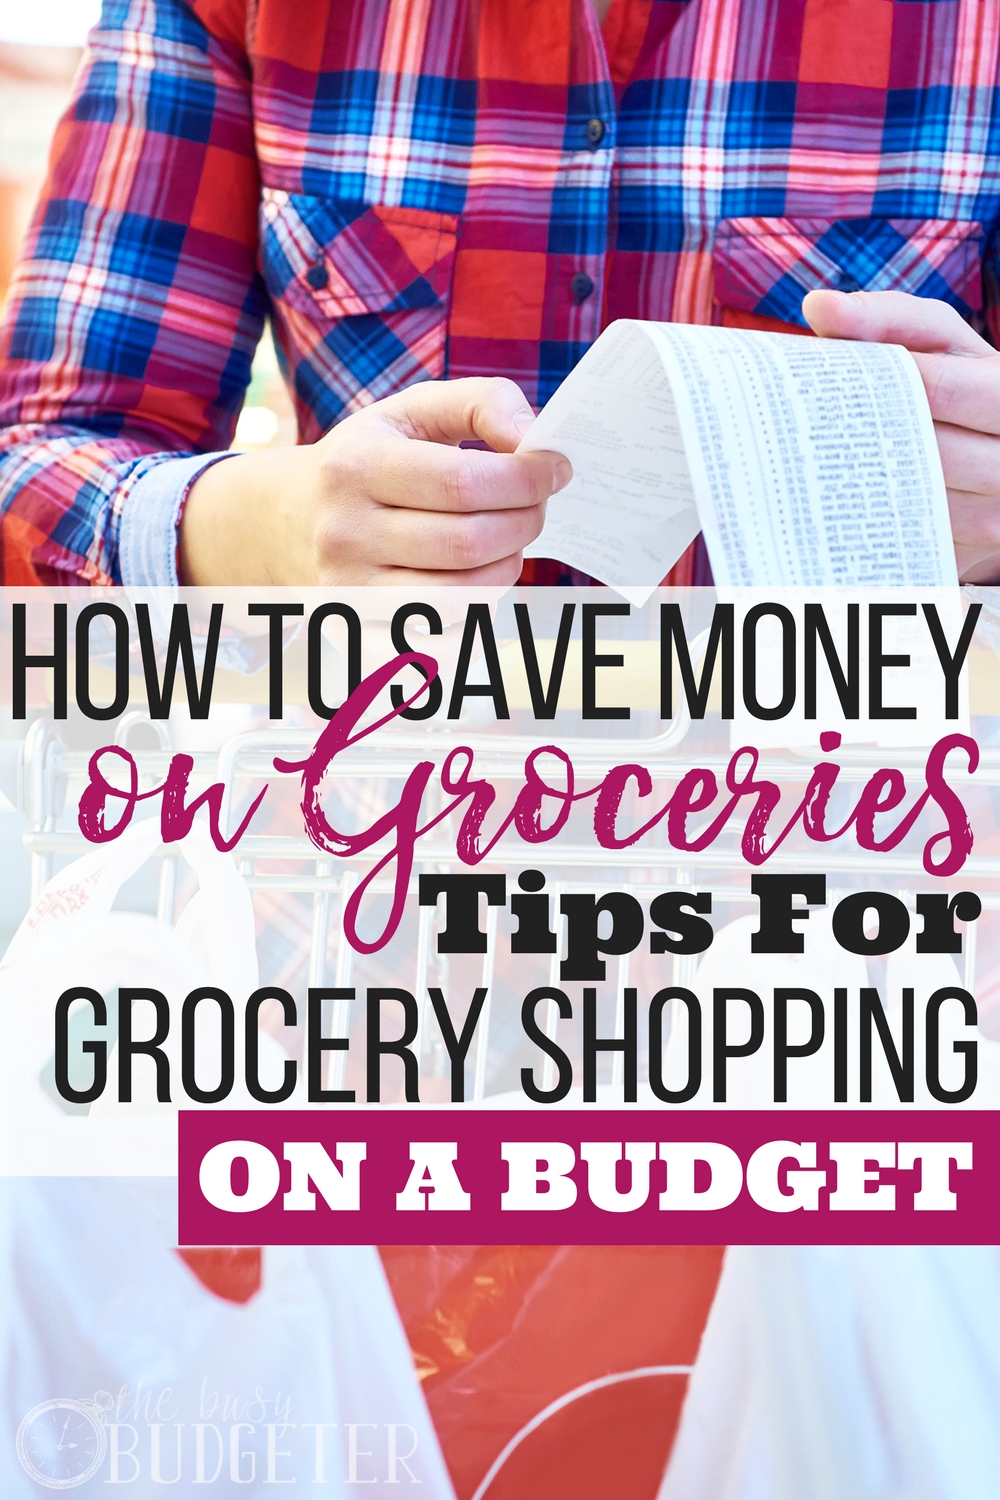 I love these tips for grocery shopping on a budget! I can't believe how easy it can be to save money on groceries. This article walked me through exactly how to save money on our biggest expense.. win!!